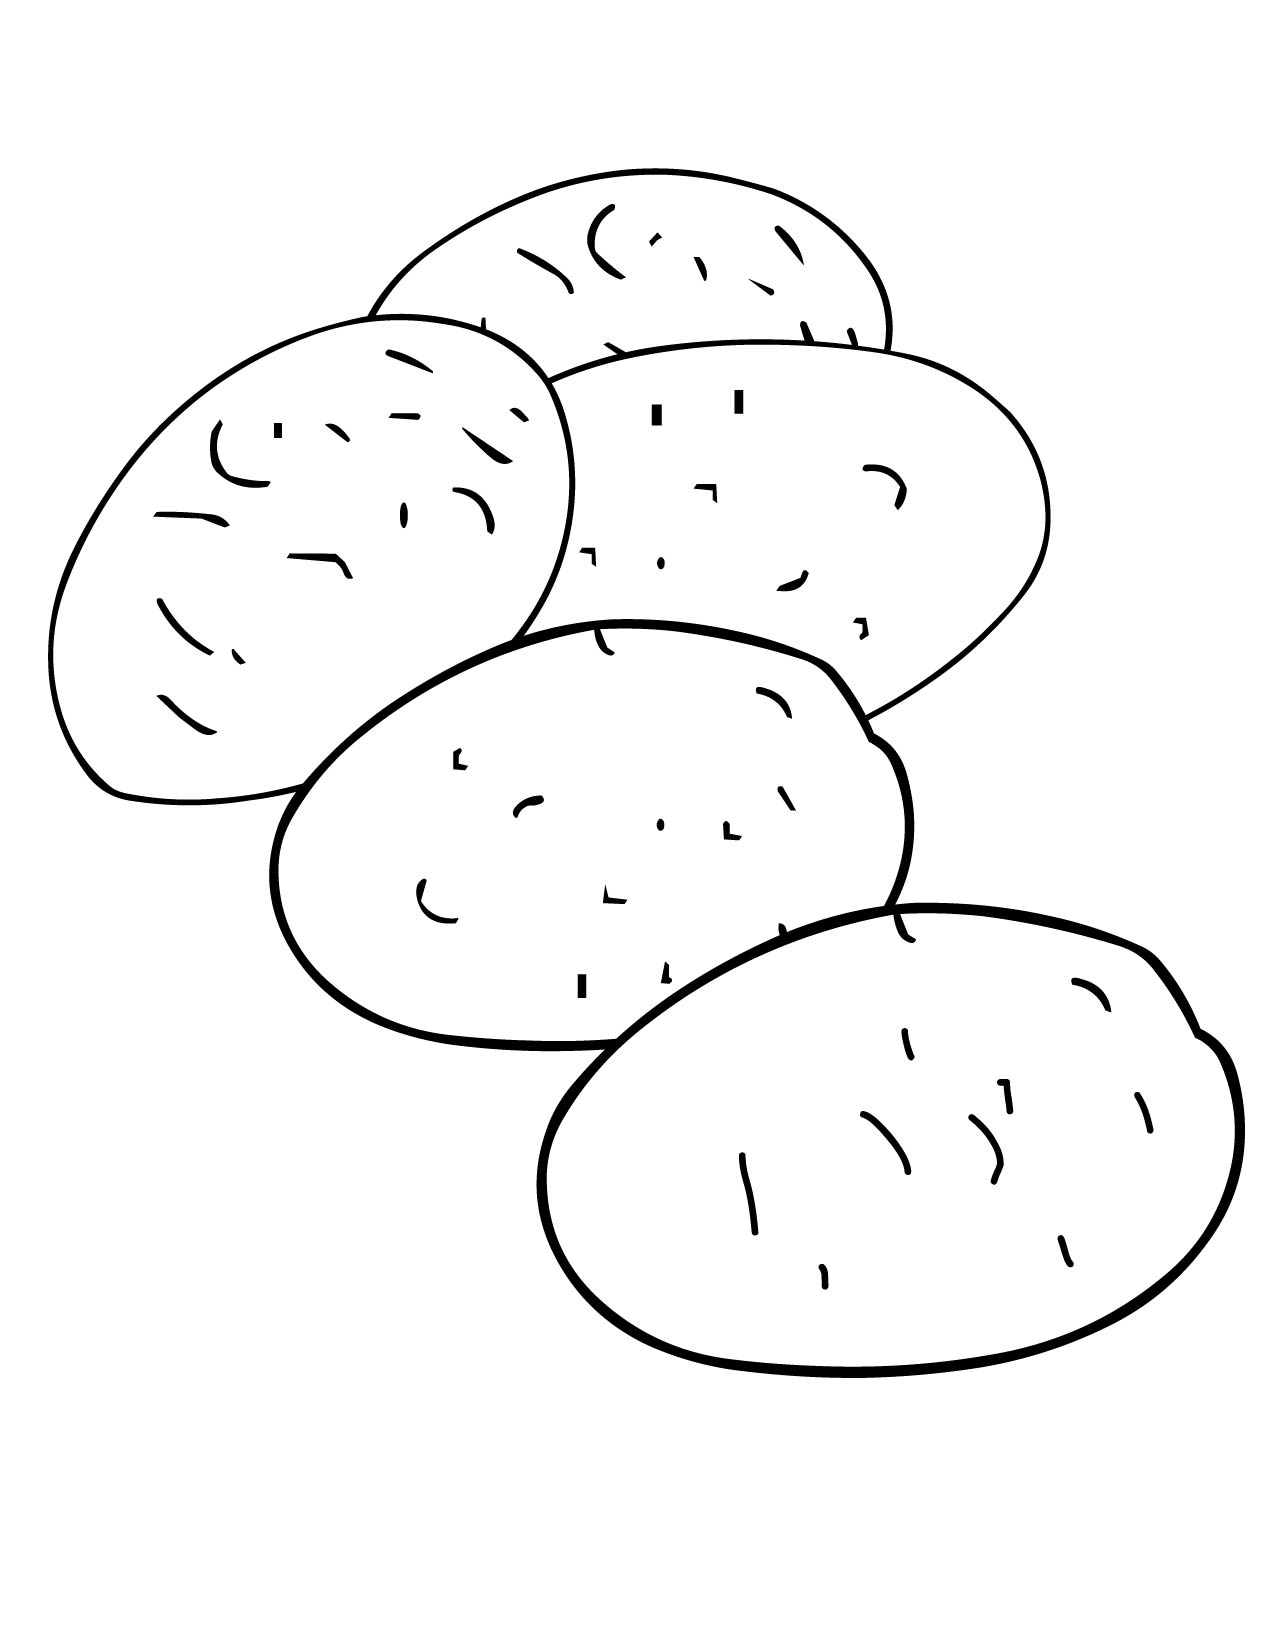 potato coloring page handipoints